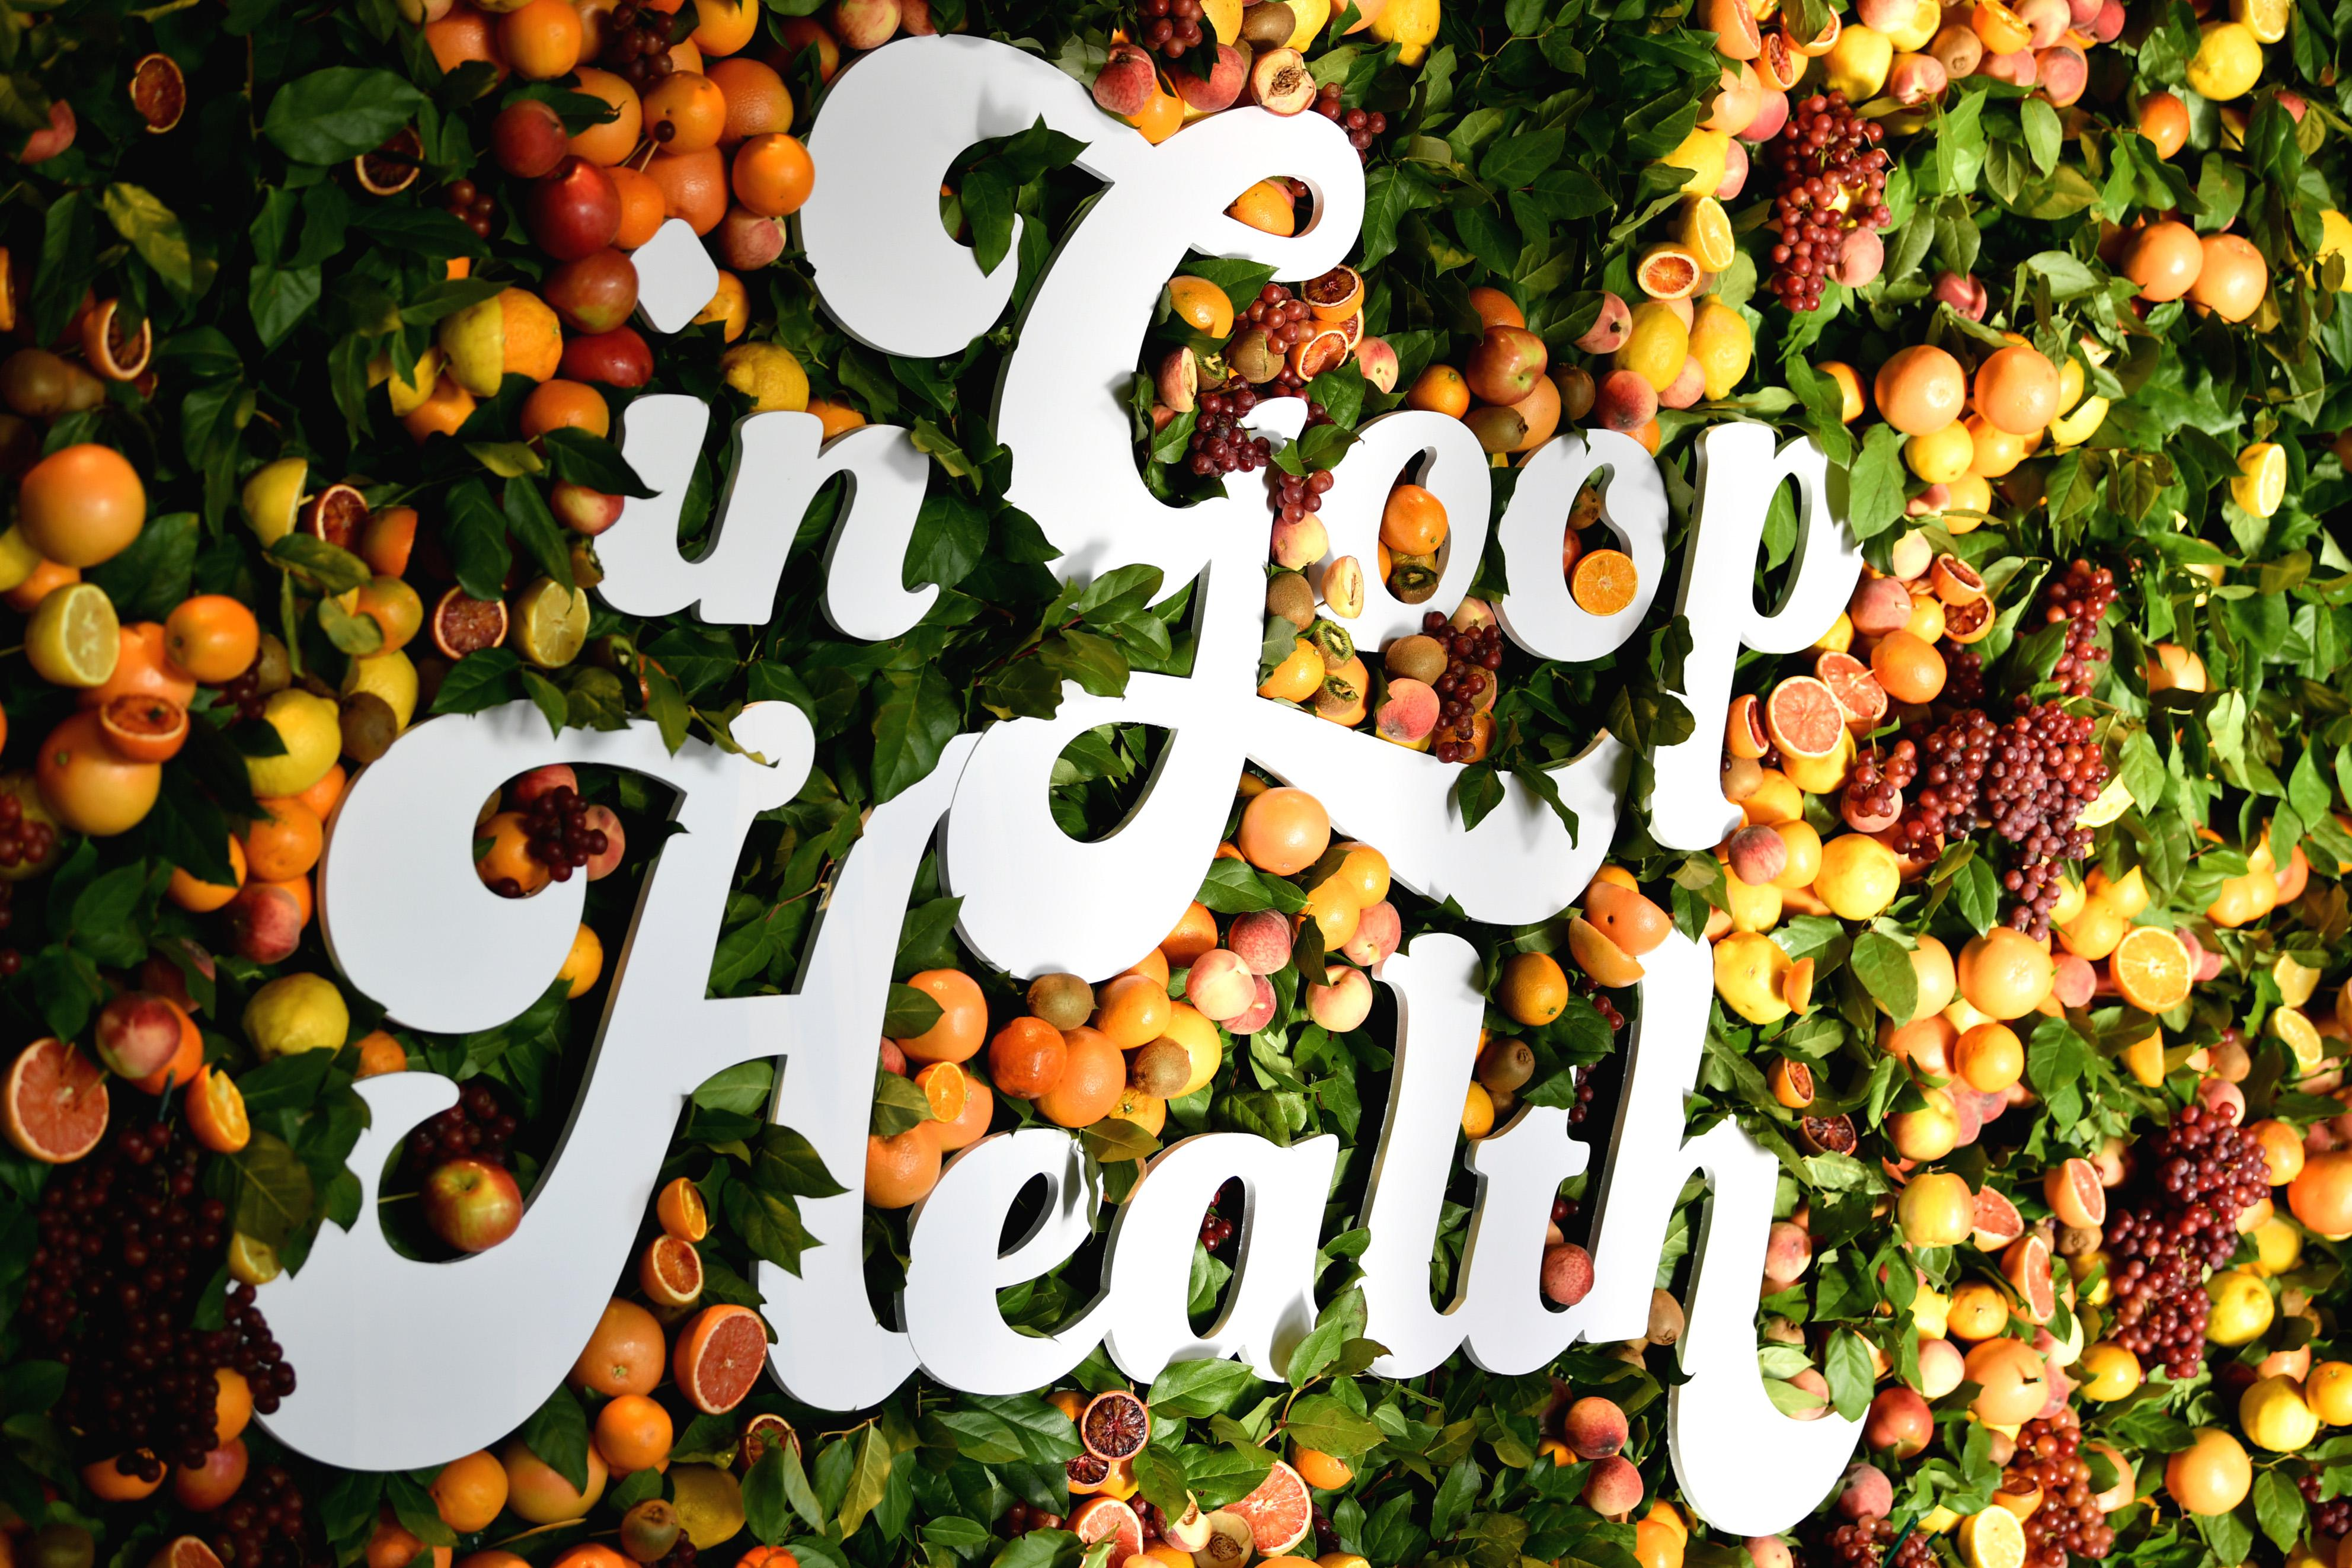 """""""In Goop Health"""" is spelled out in white letters against a floral backdrop."""